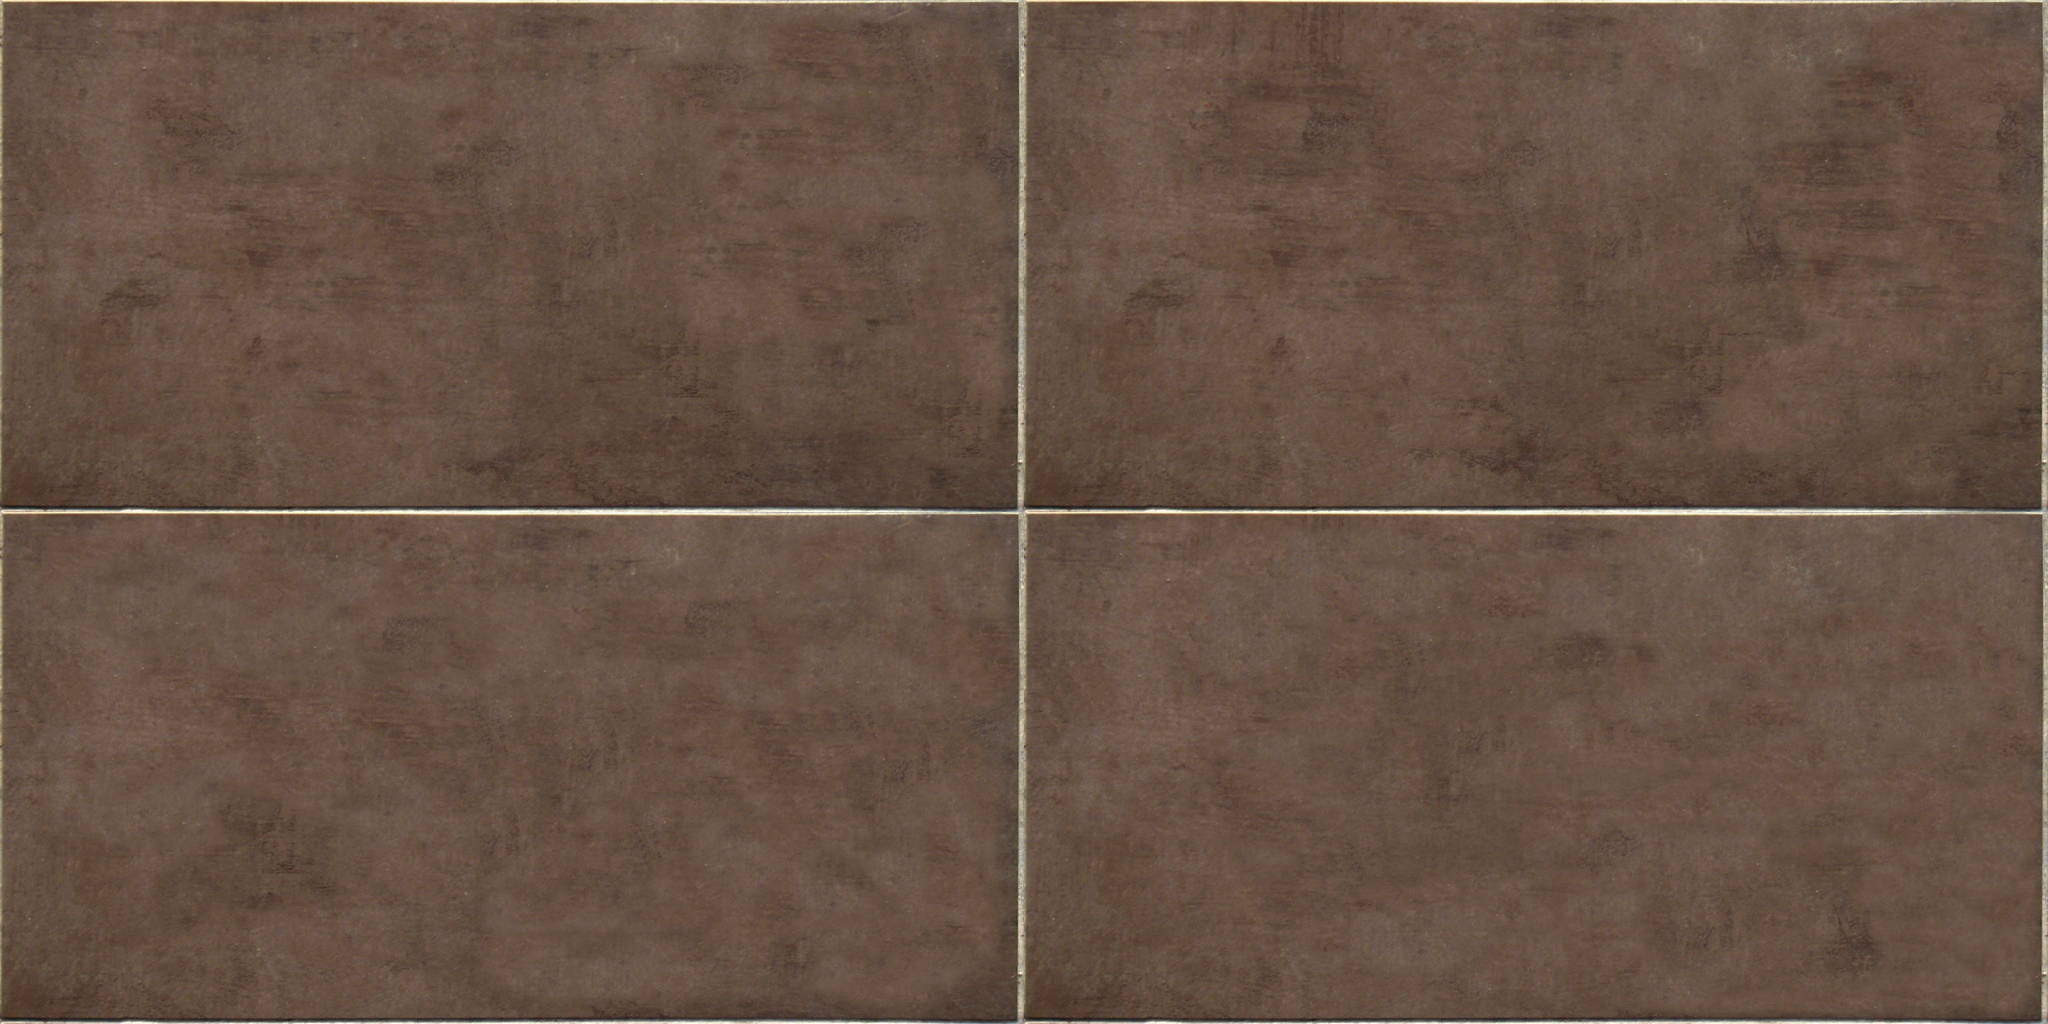 Brown Floor Tile Brown Floor Tiles Texture Floor Tiles Brown